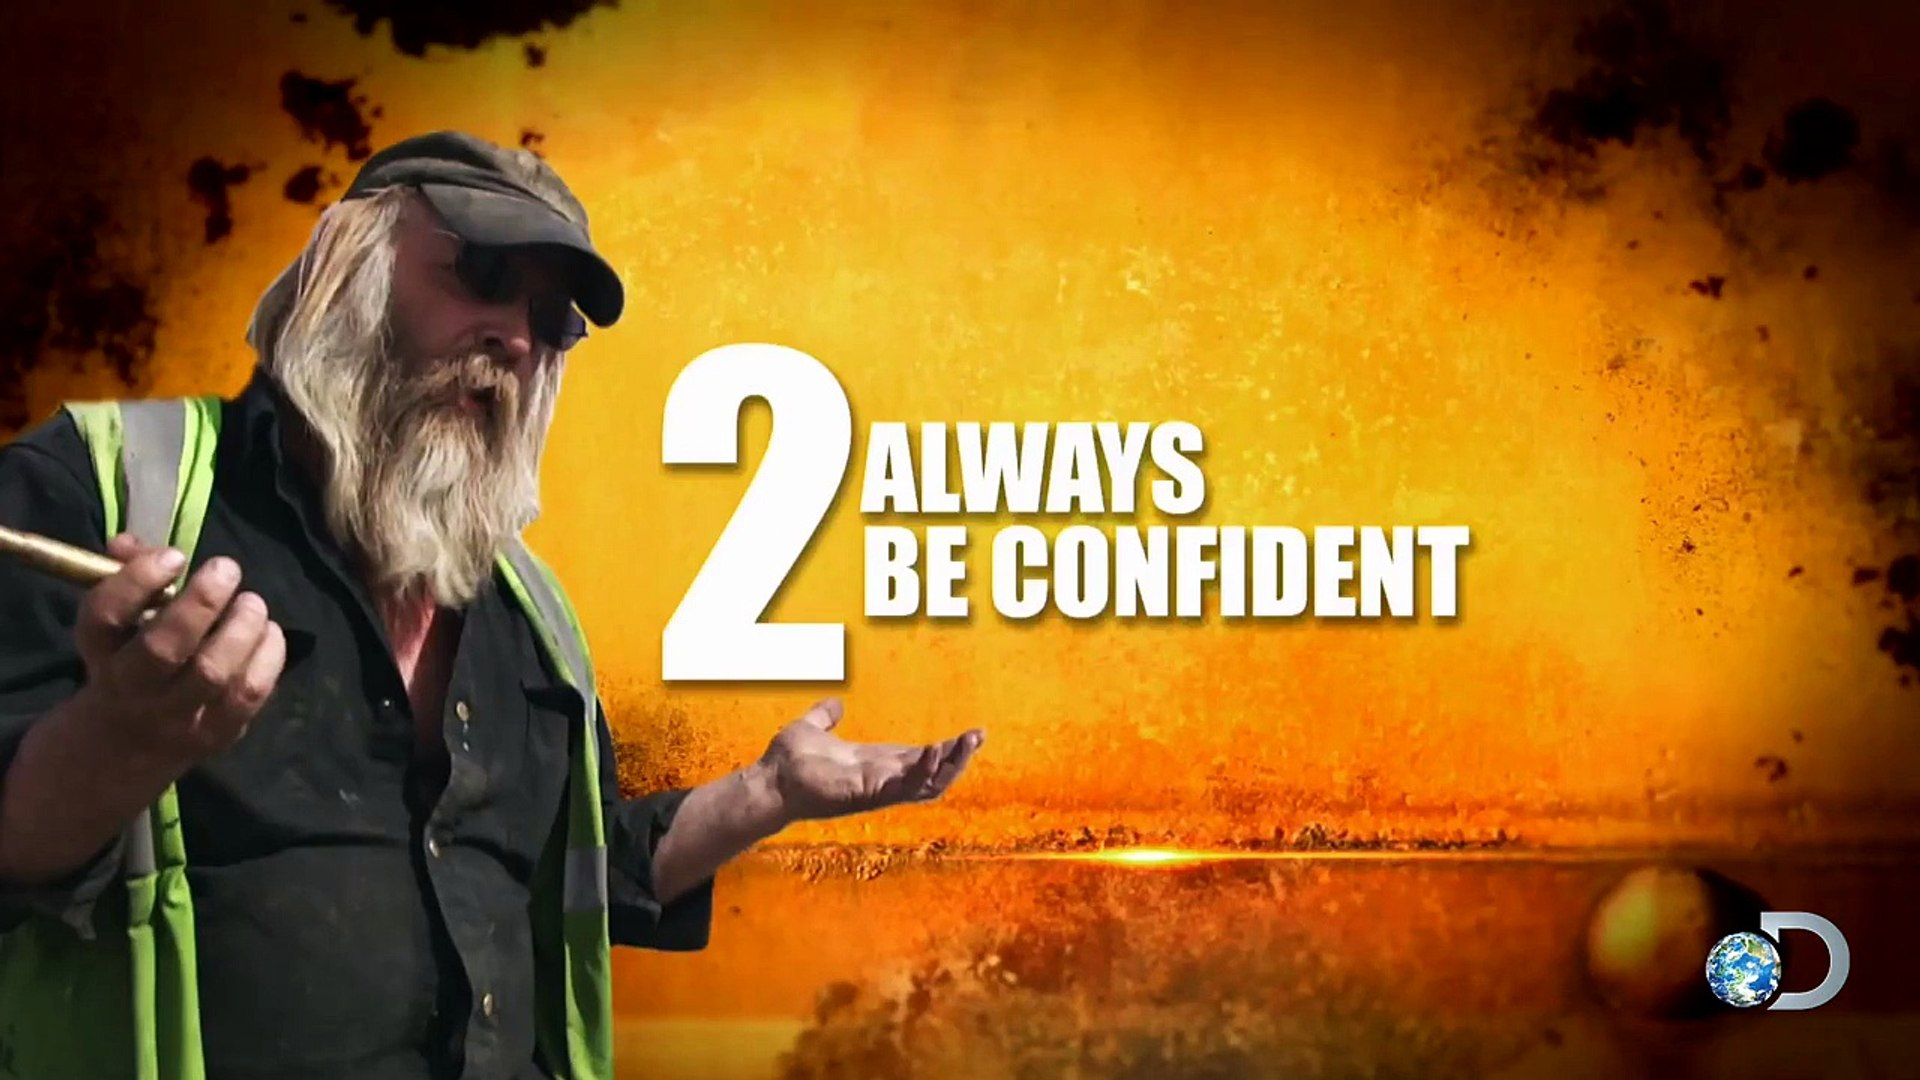 Life Lessons From Tony Beets - Gold Rush